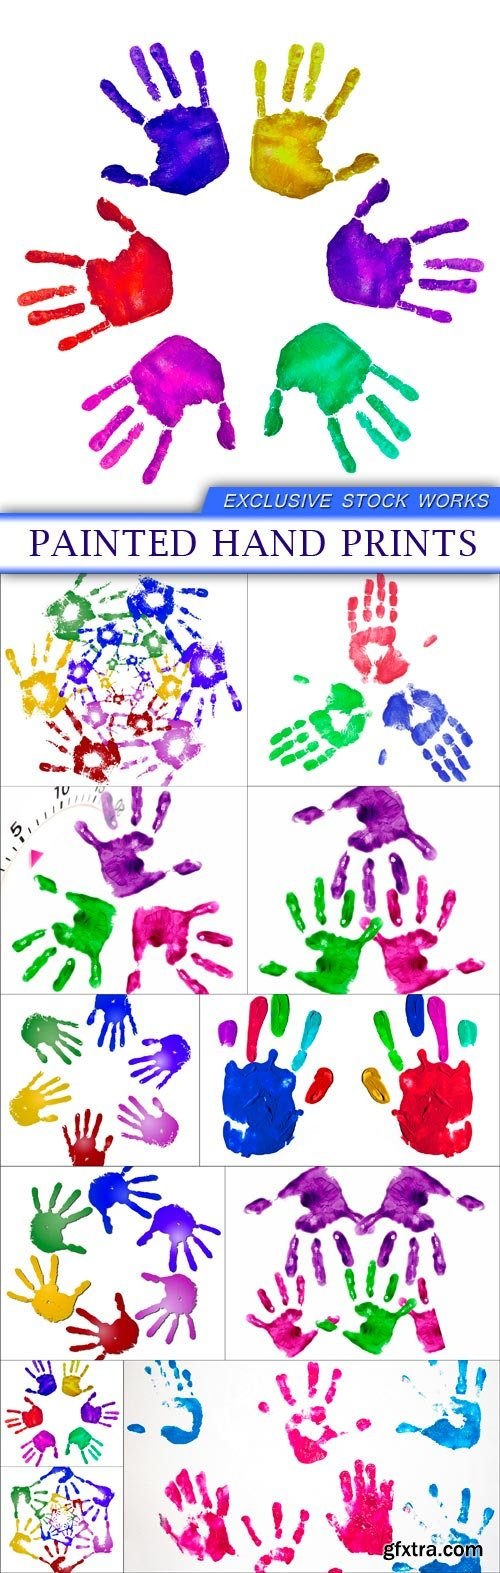 painted hand prints 11X JPEG